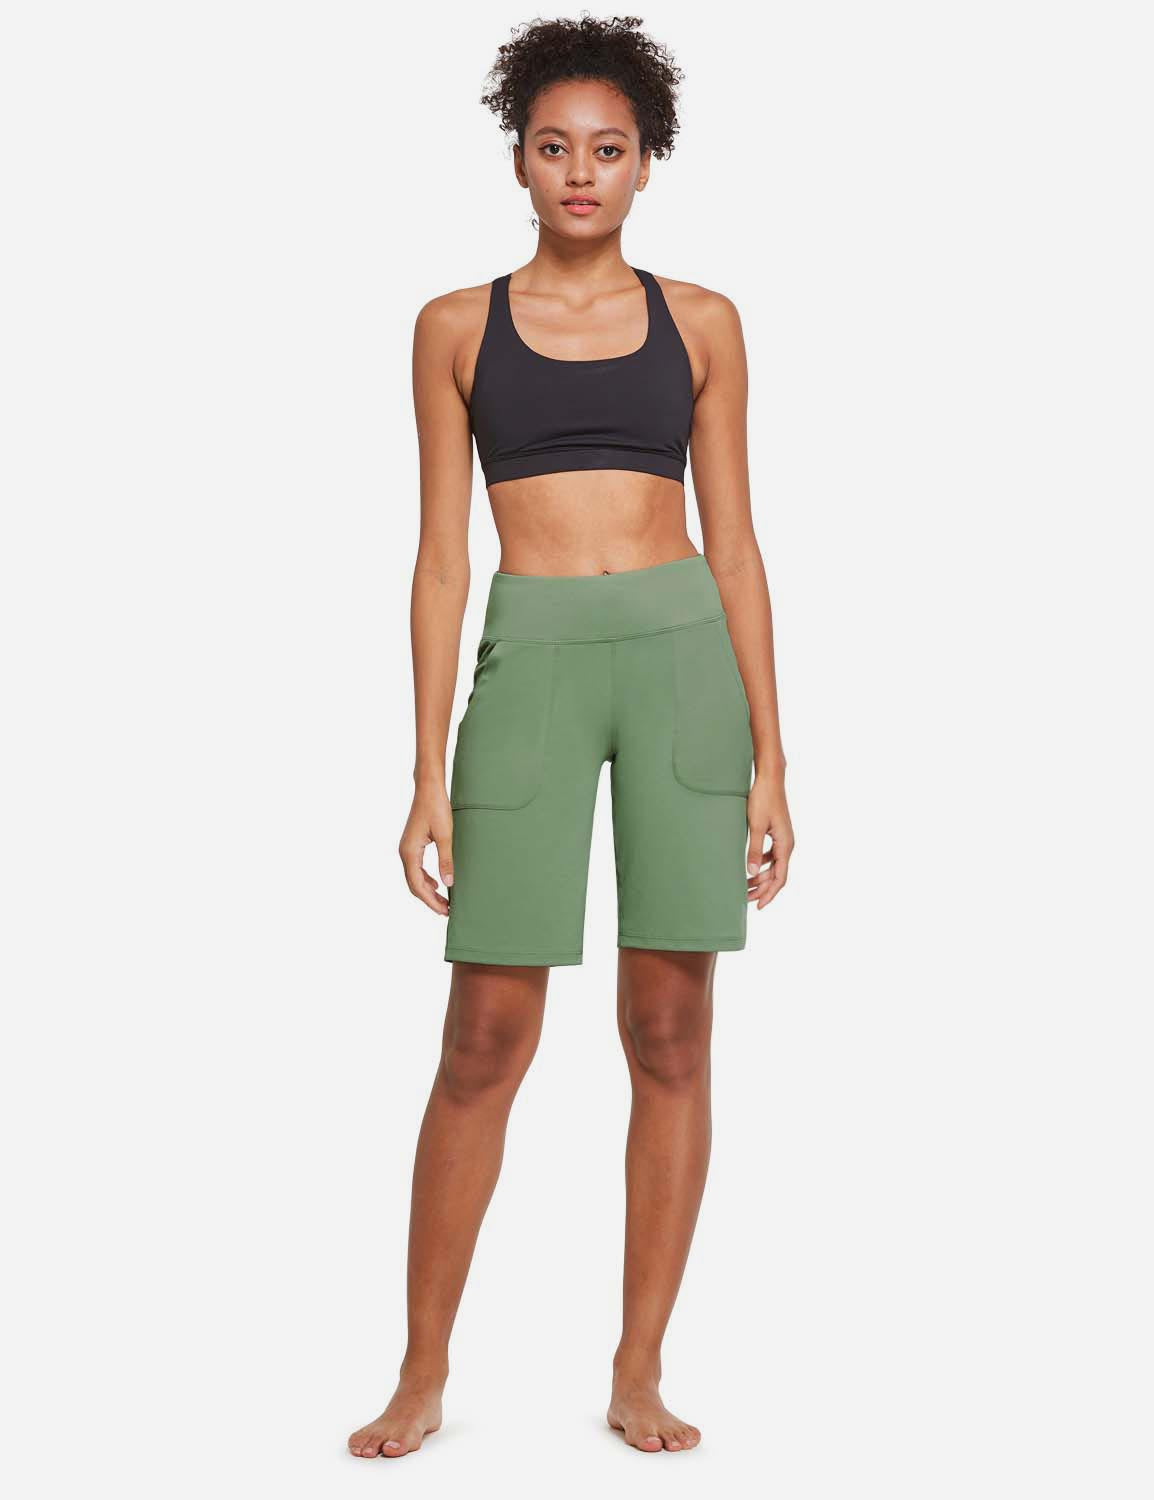 Baleaf Womens Mid Rise Tummy Control Pocketed Lounge Bermuda Shorts Niagara Details Olive Green Back